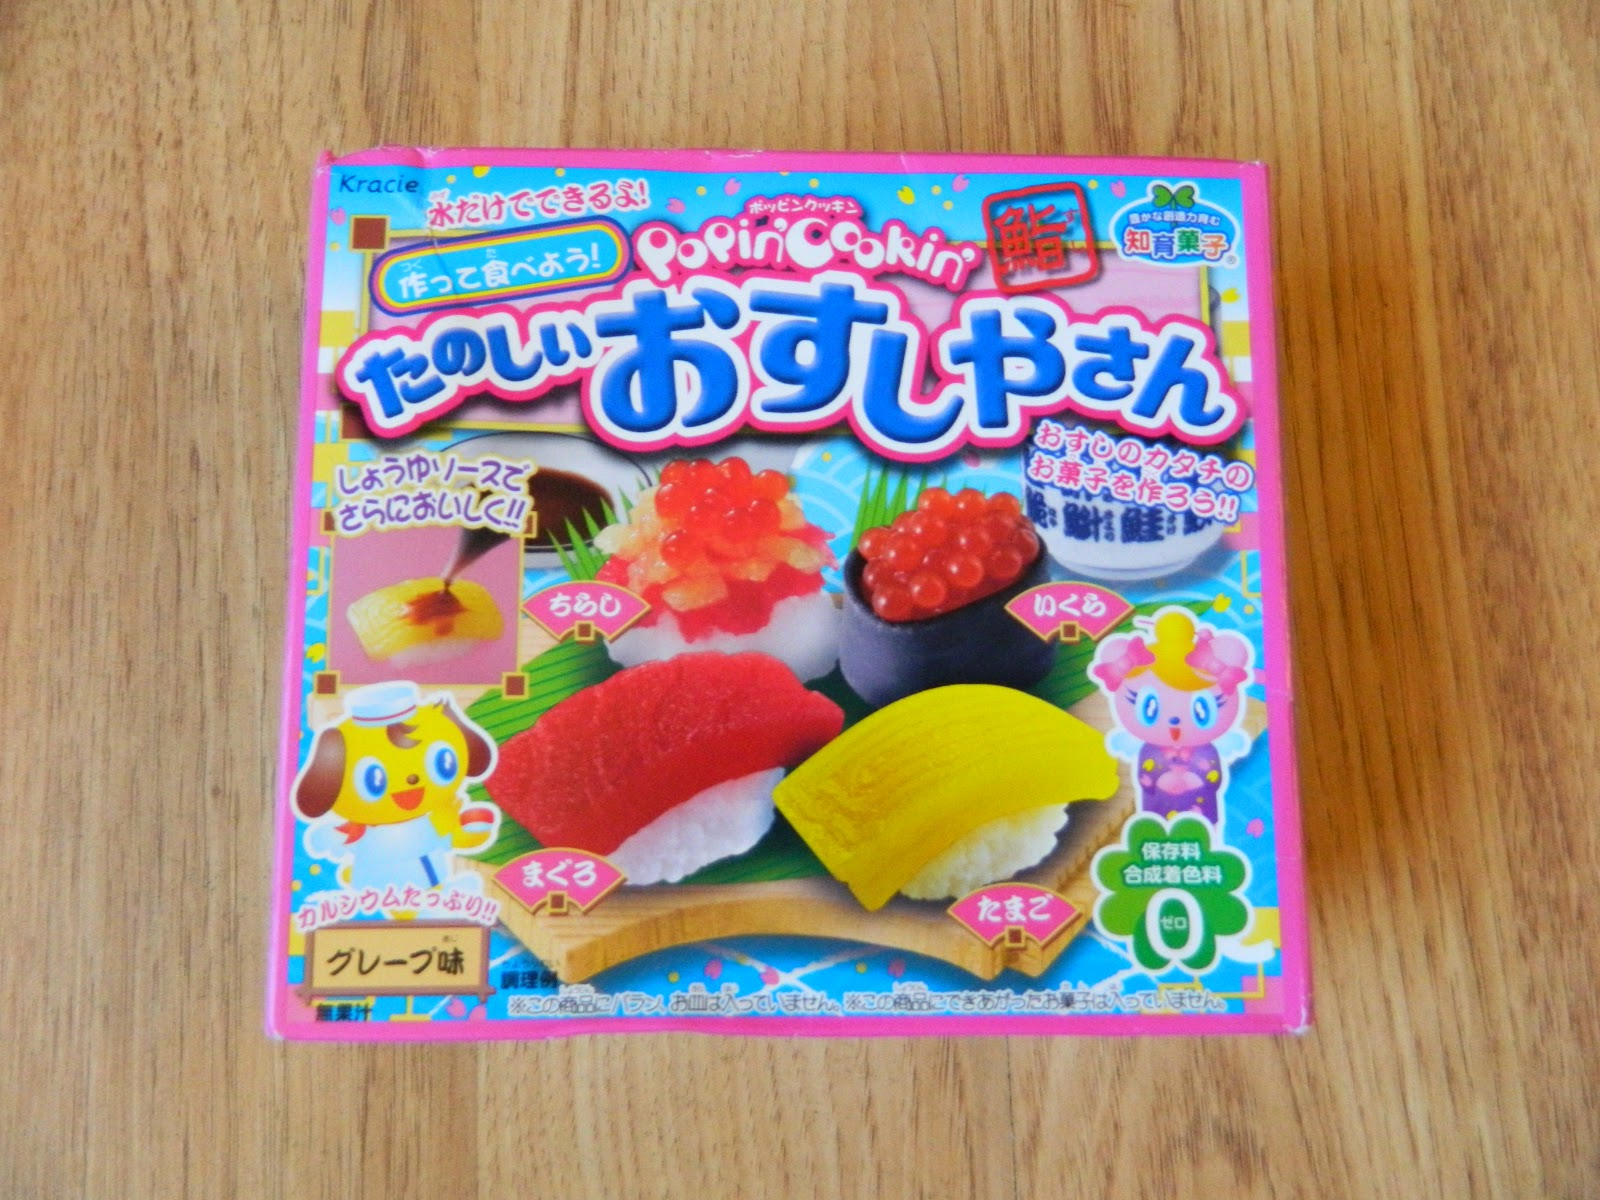 Popin cookin amazon - I Received The Package Like This The Box Wasn T In Mint Condition But It Wasn T Badly Damaged I Didn T Mind Because It Did Get Shipped From All The Way In